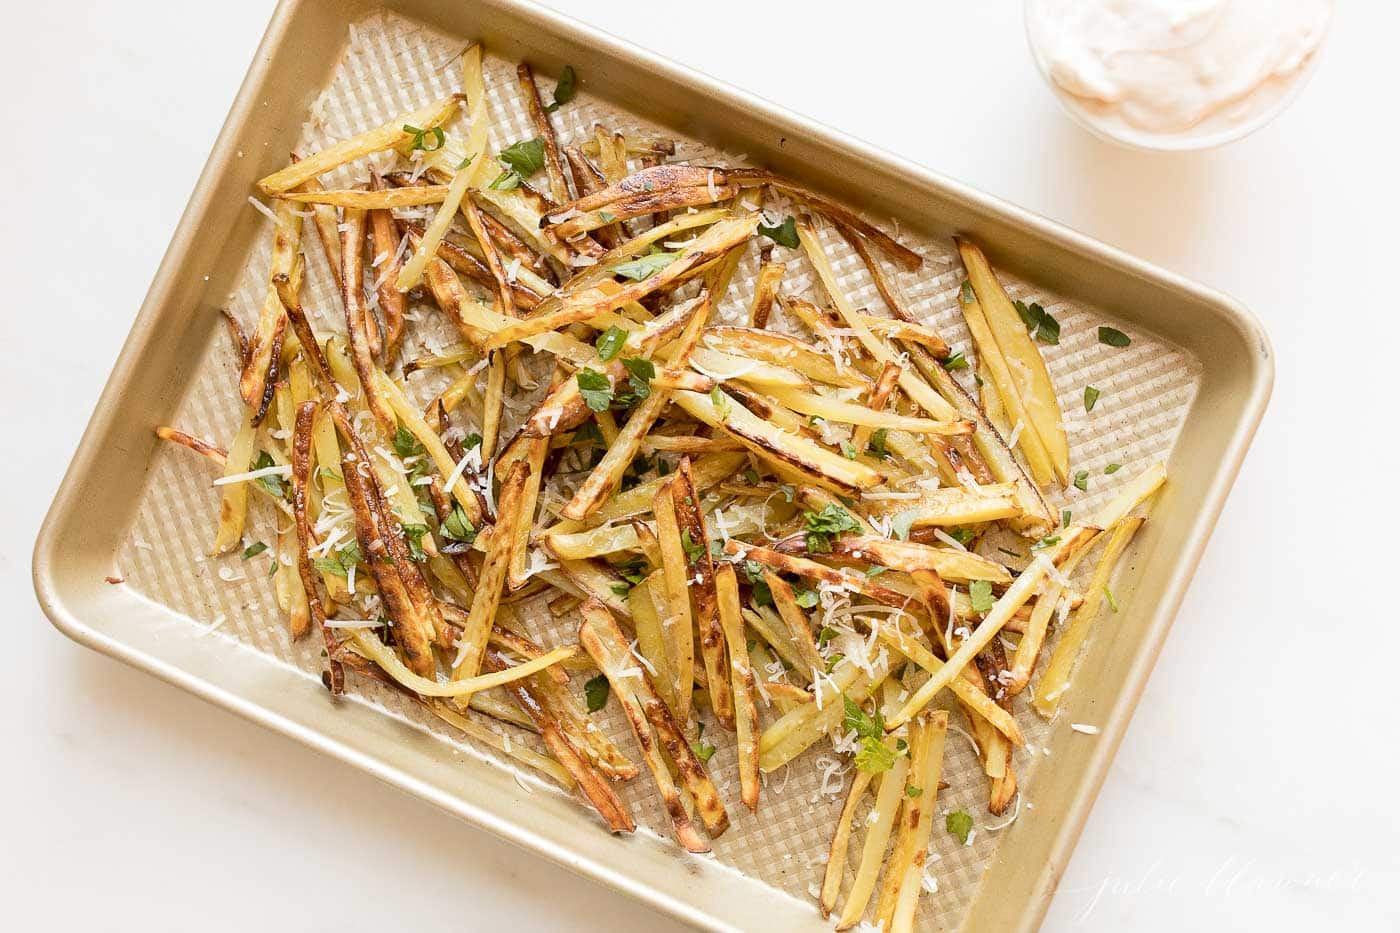 gourmet fries with Parmesan and parsley on a sheet pan